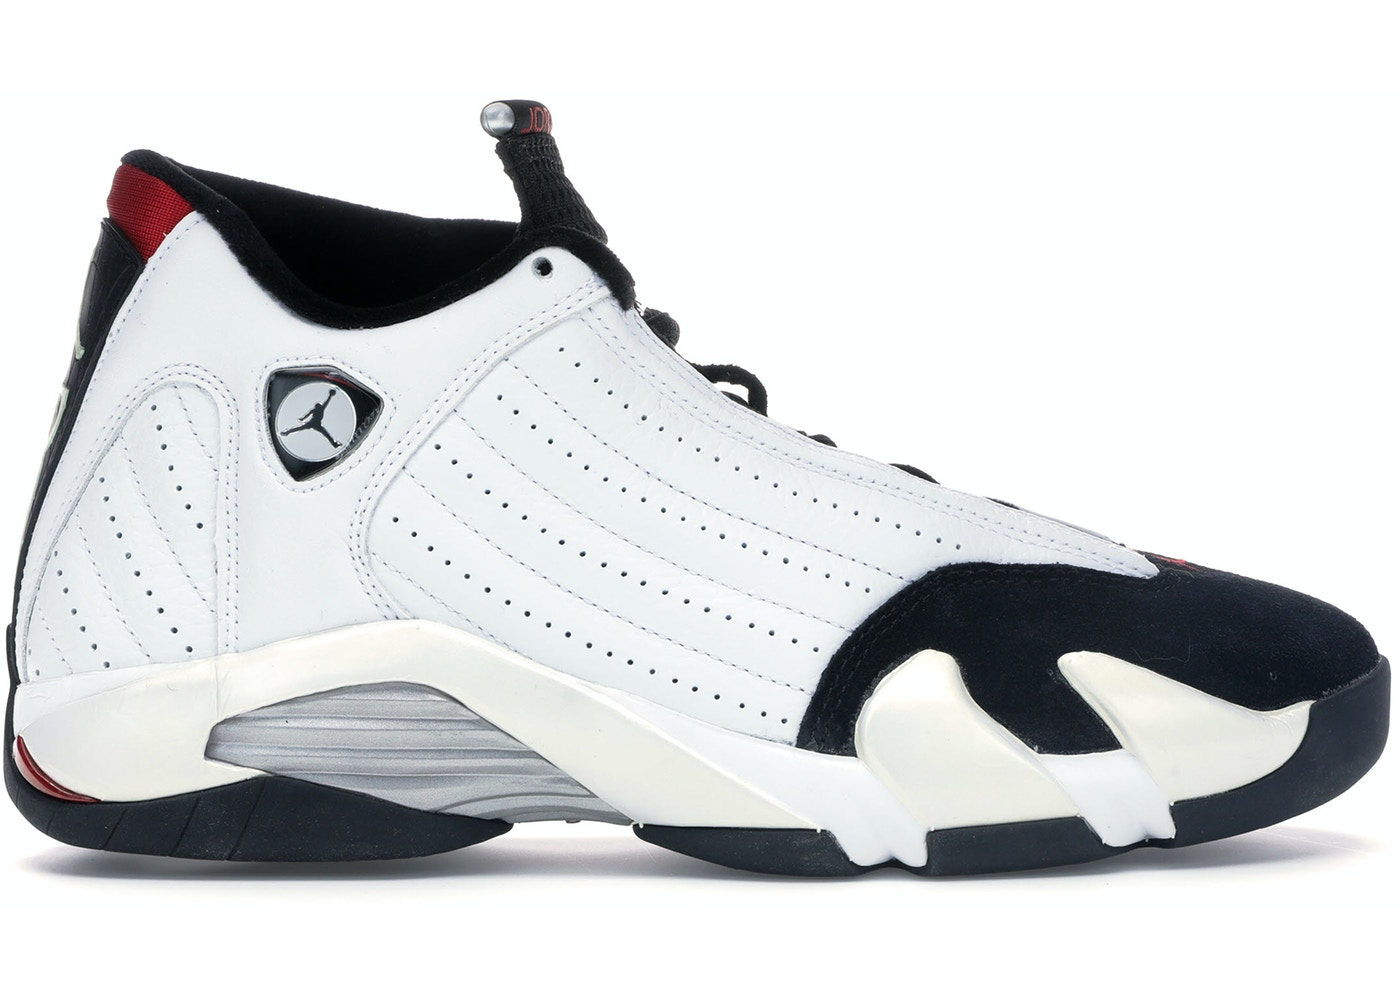 promo code 0d74e fb943 Jordan 14 Retro Black Toe (2006)